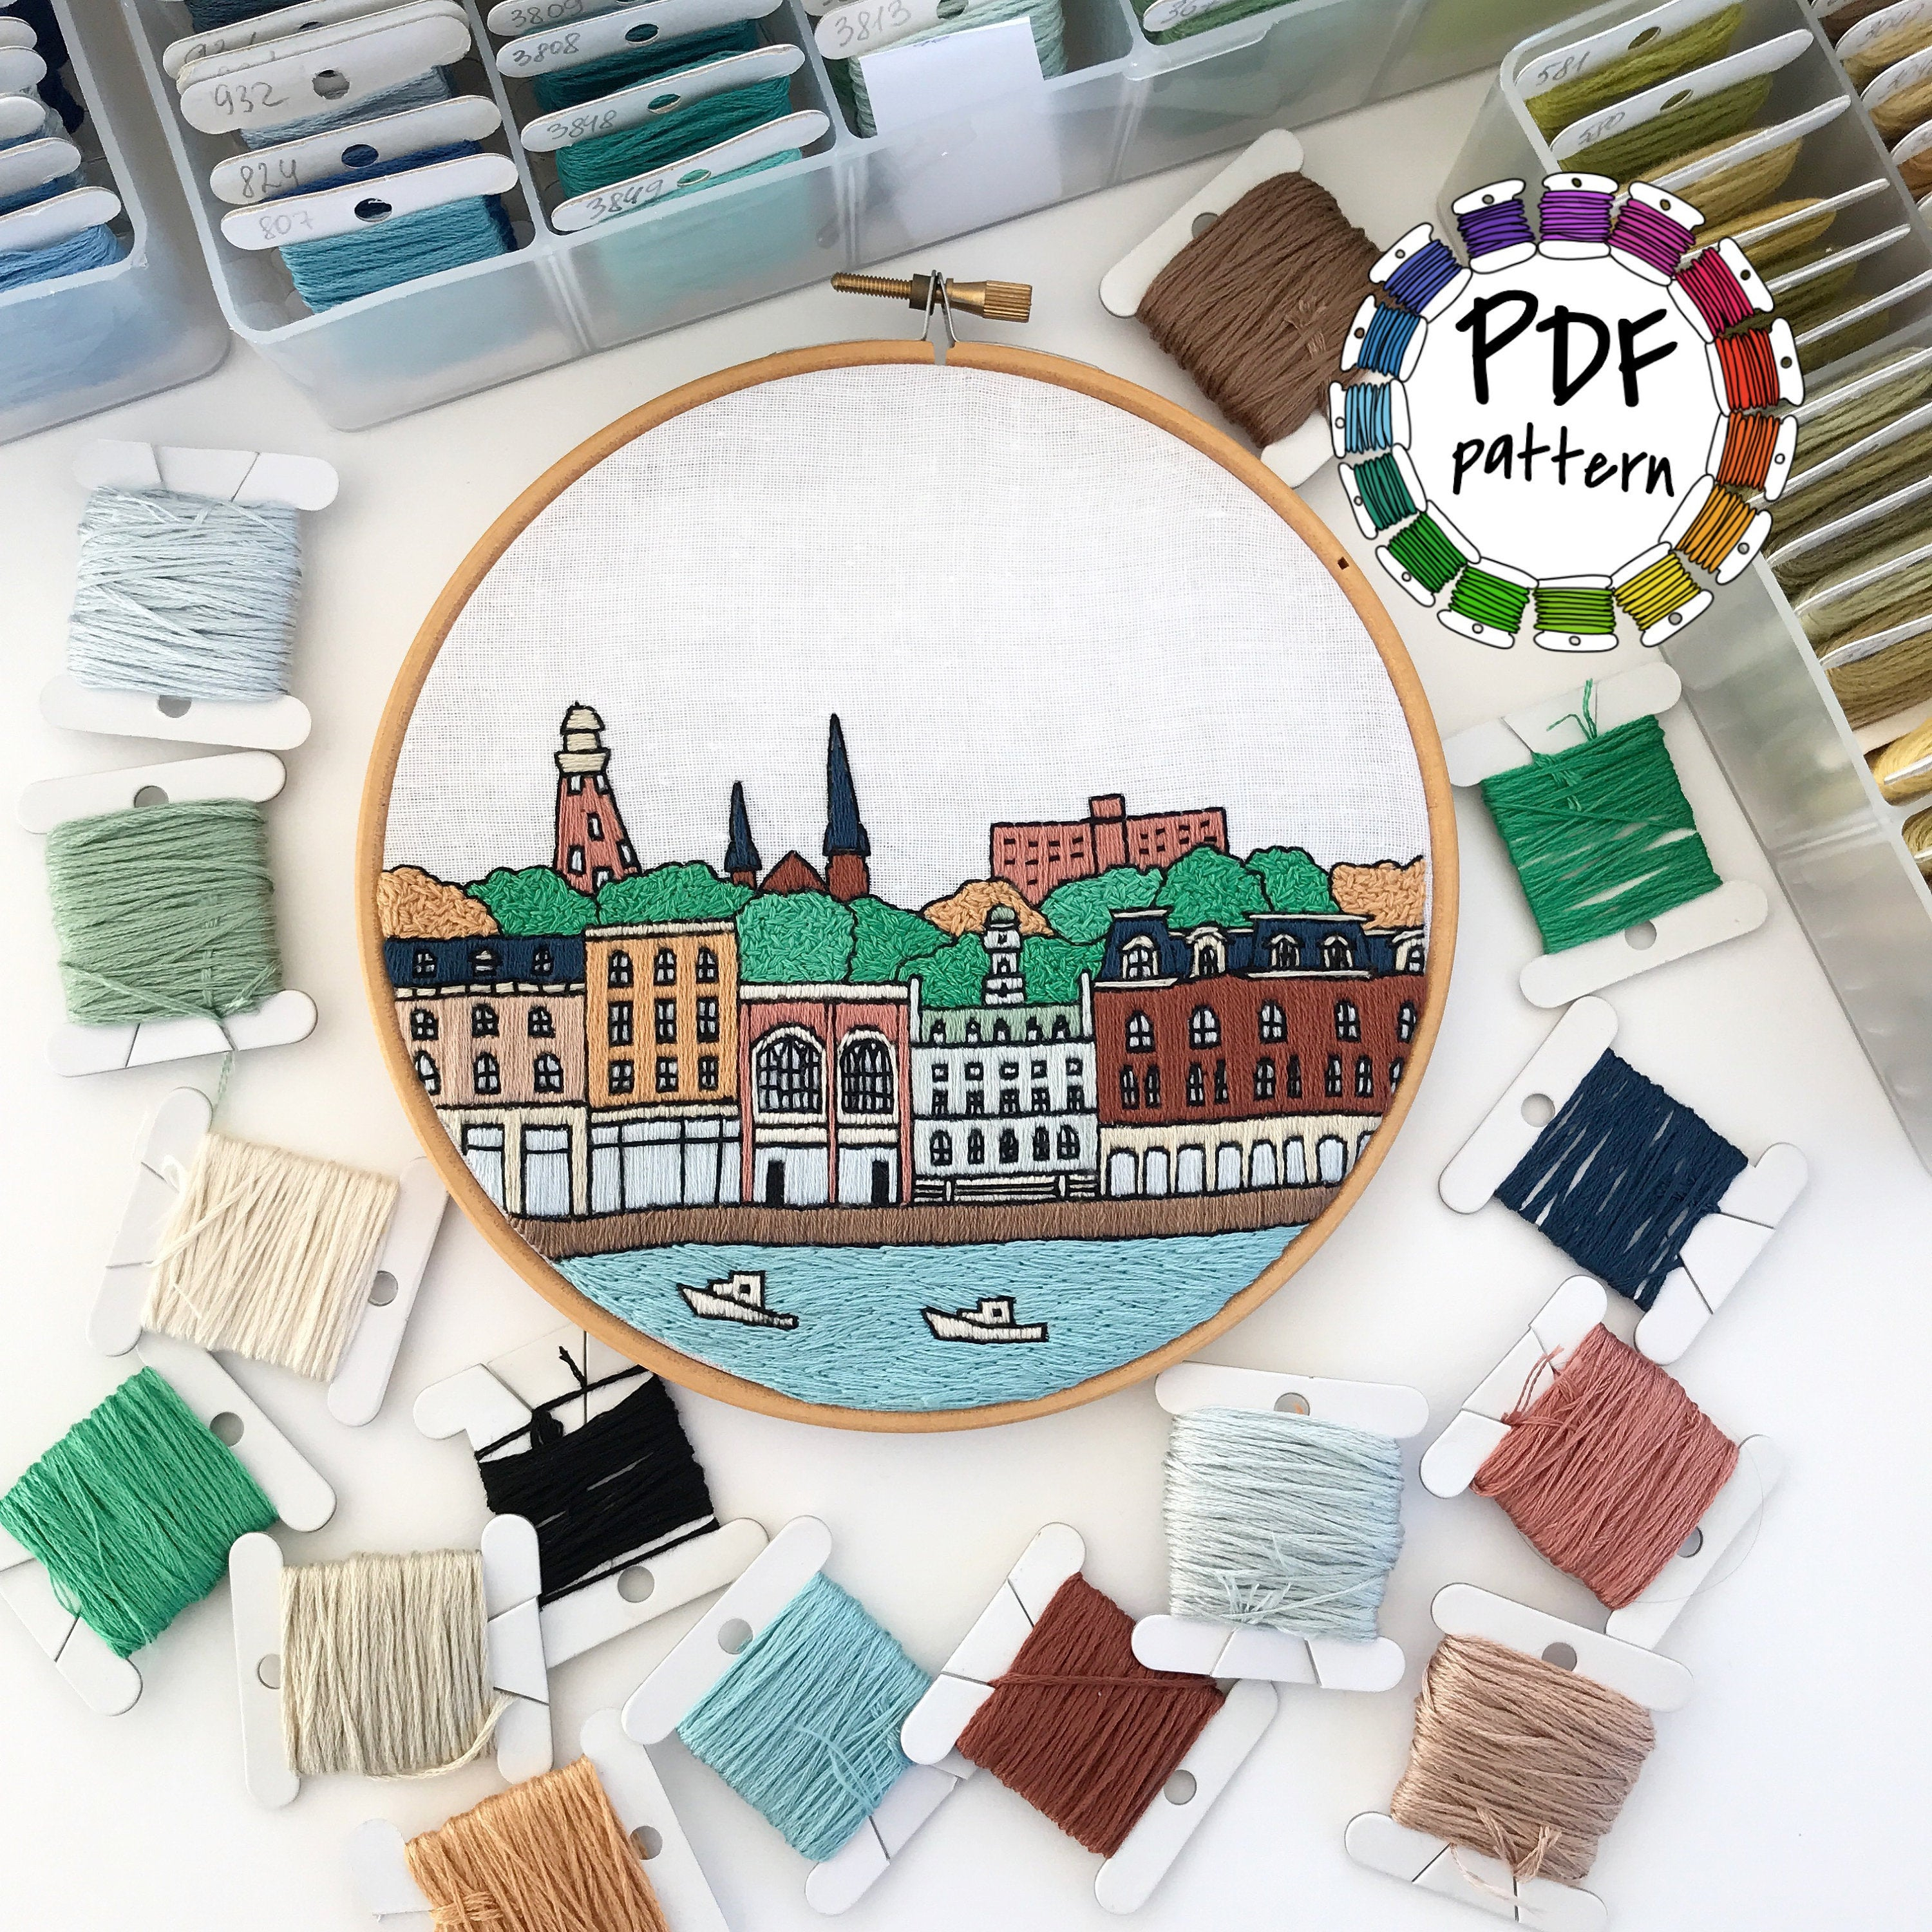 Free Hand Embroidery Pattern Portland Maine Hand Embroidery Pattern Pdf Embroidery Hoop Art Diy Wall Decor Housewarming Gift Free Hand Embroidery Guide